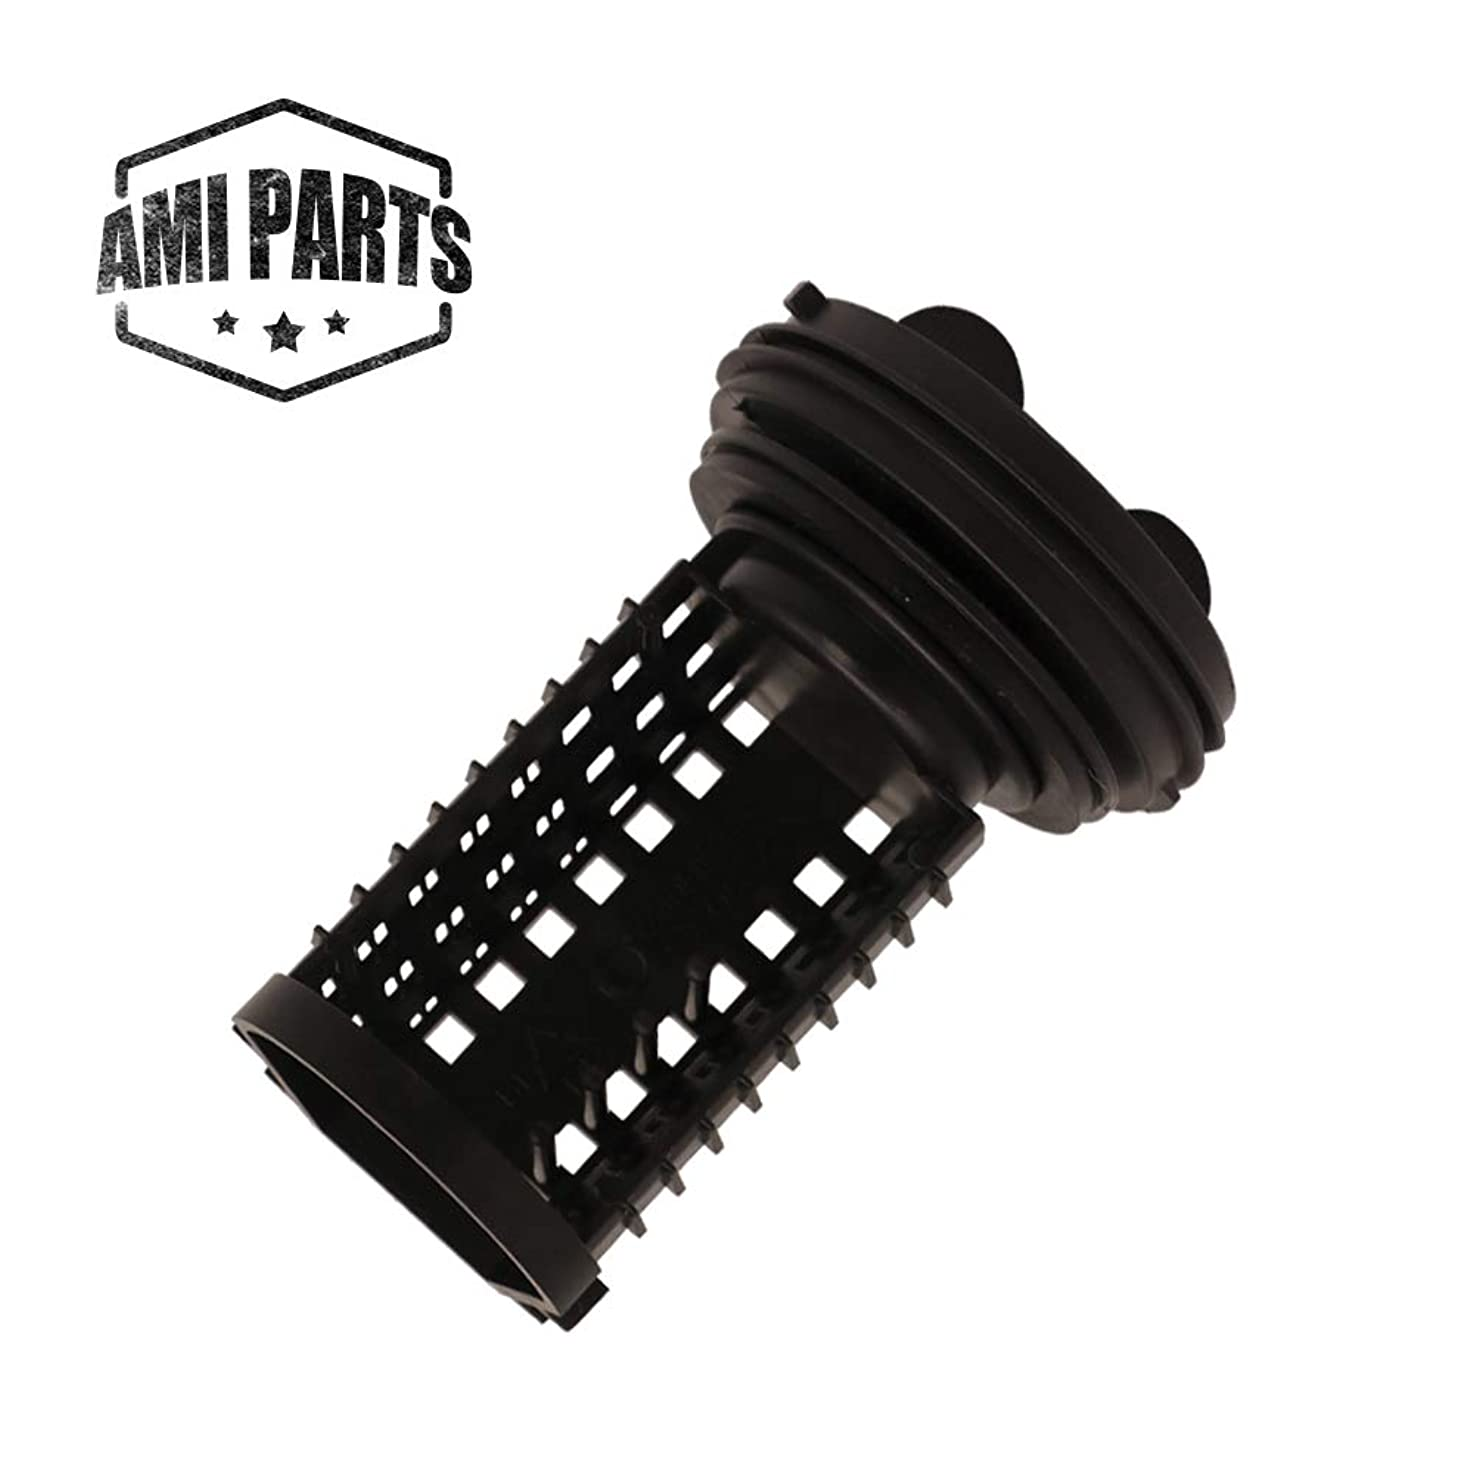 AMI PARTS 383EER2001A Washer Drain Pump Filter/Trap for LG Washer Drain Pump Replaces AP4440367 383EER2001F